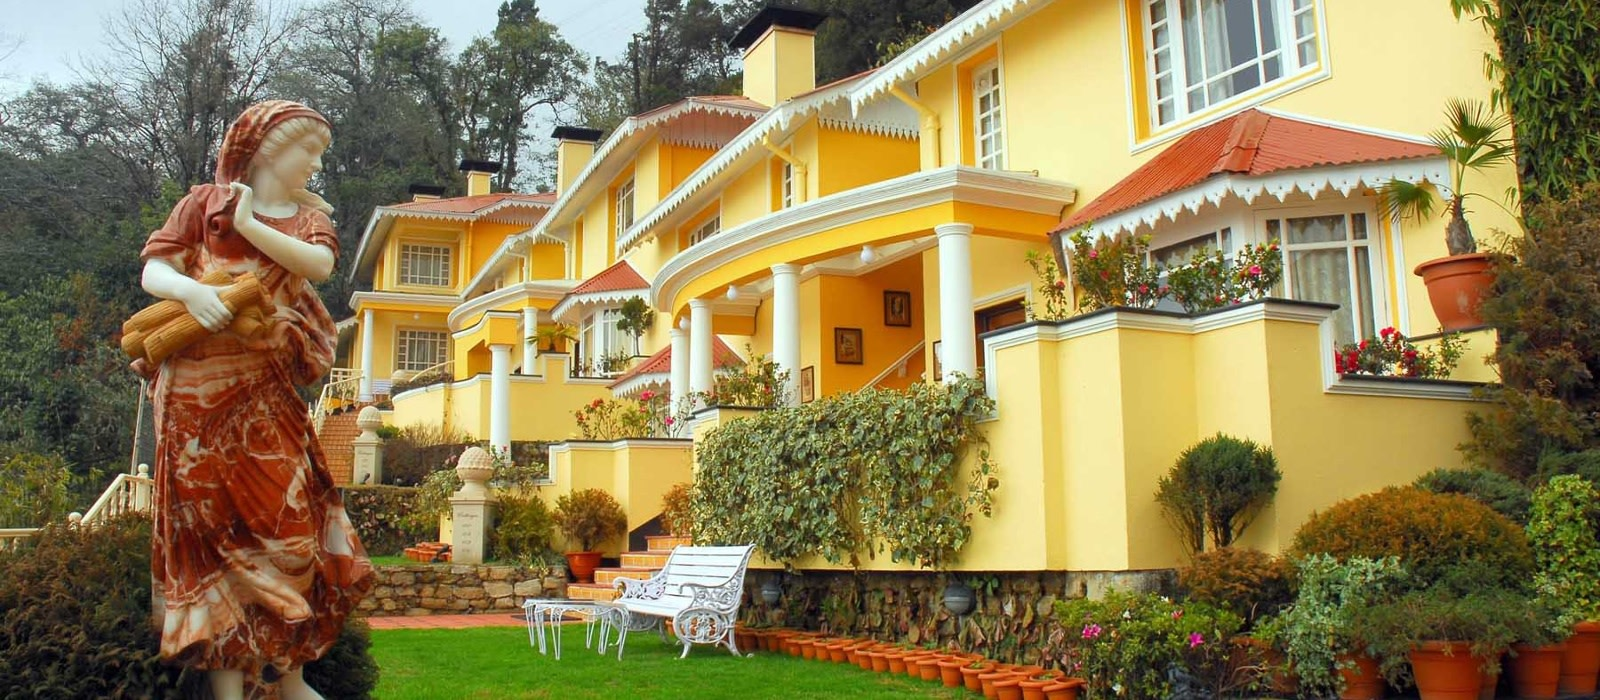 Hotel Mayfair Darjeeling Ostindien